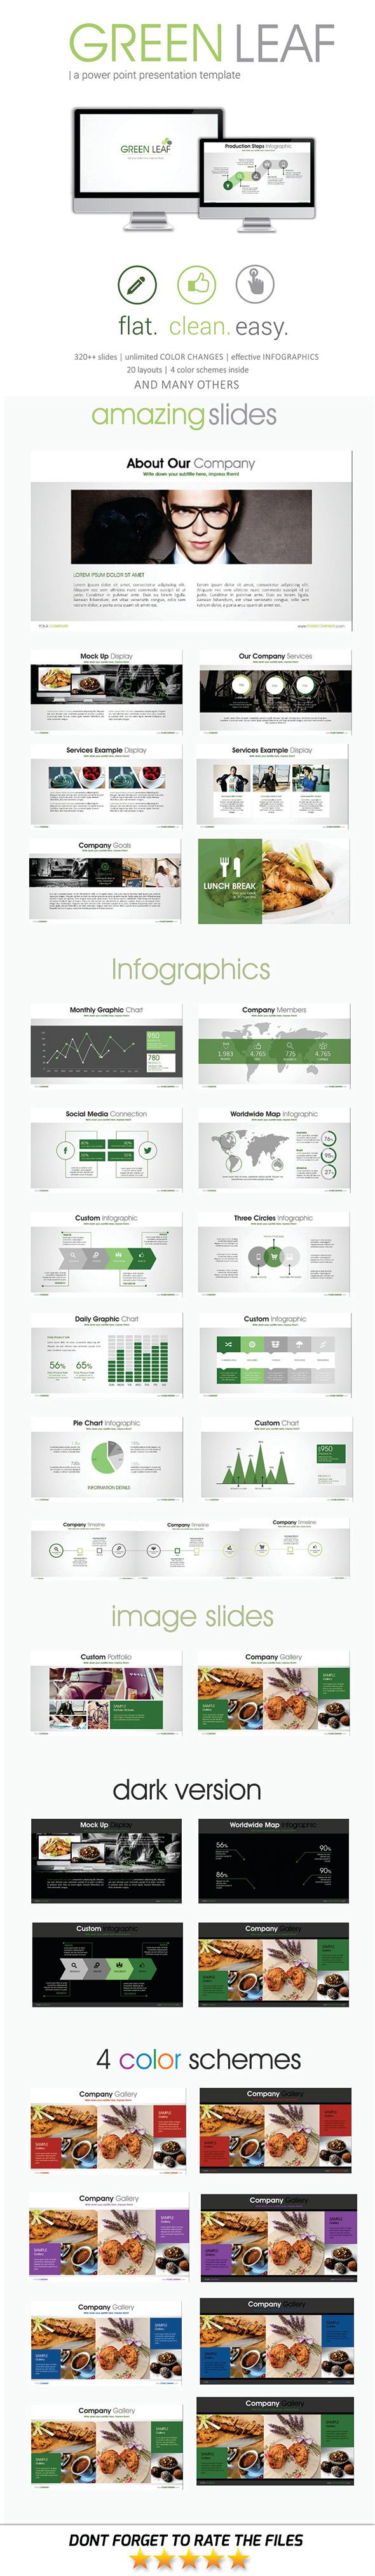 Green Leaf PowerPoint Template #design Download: http://graphicriver.net/item/green-leaf-powerpoint-template/11561434?ref=ksioks